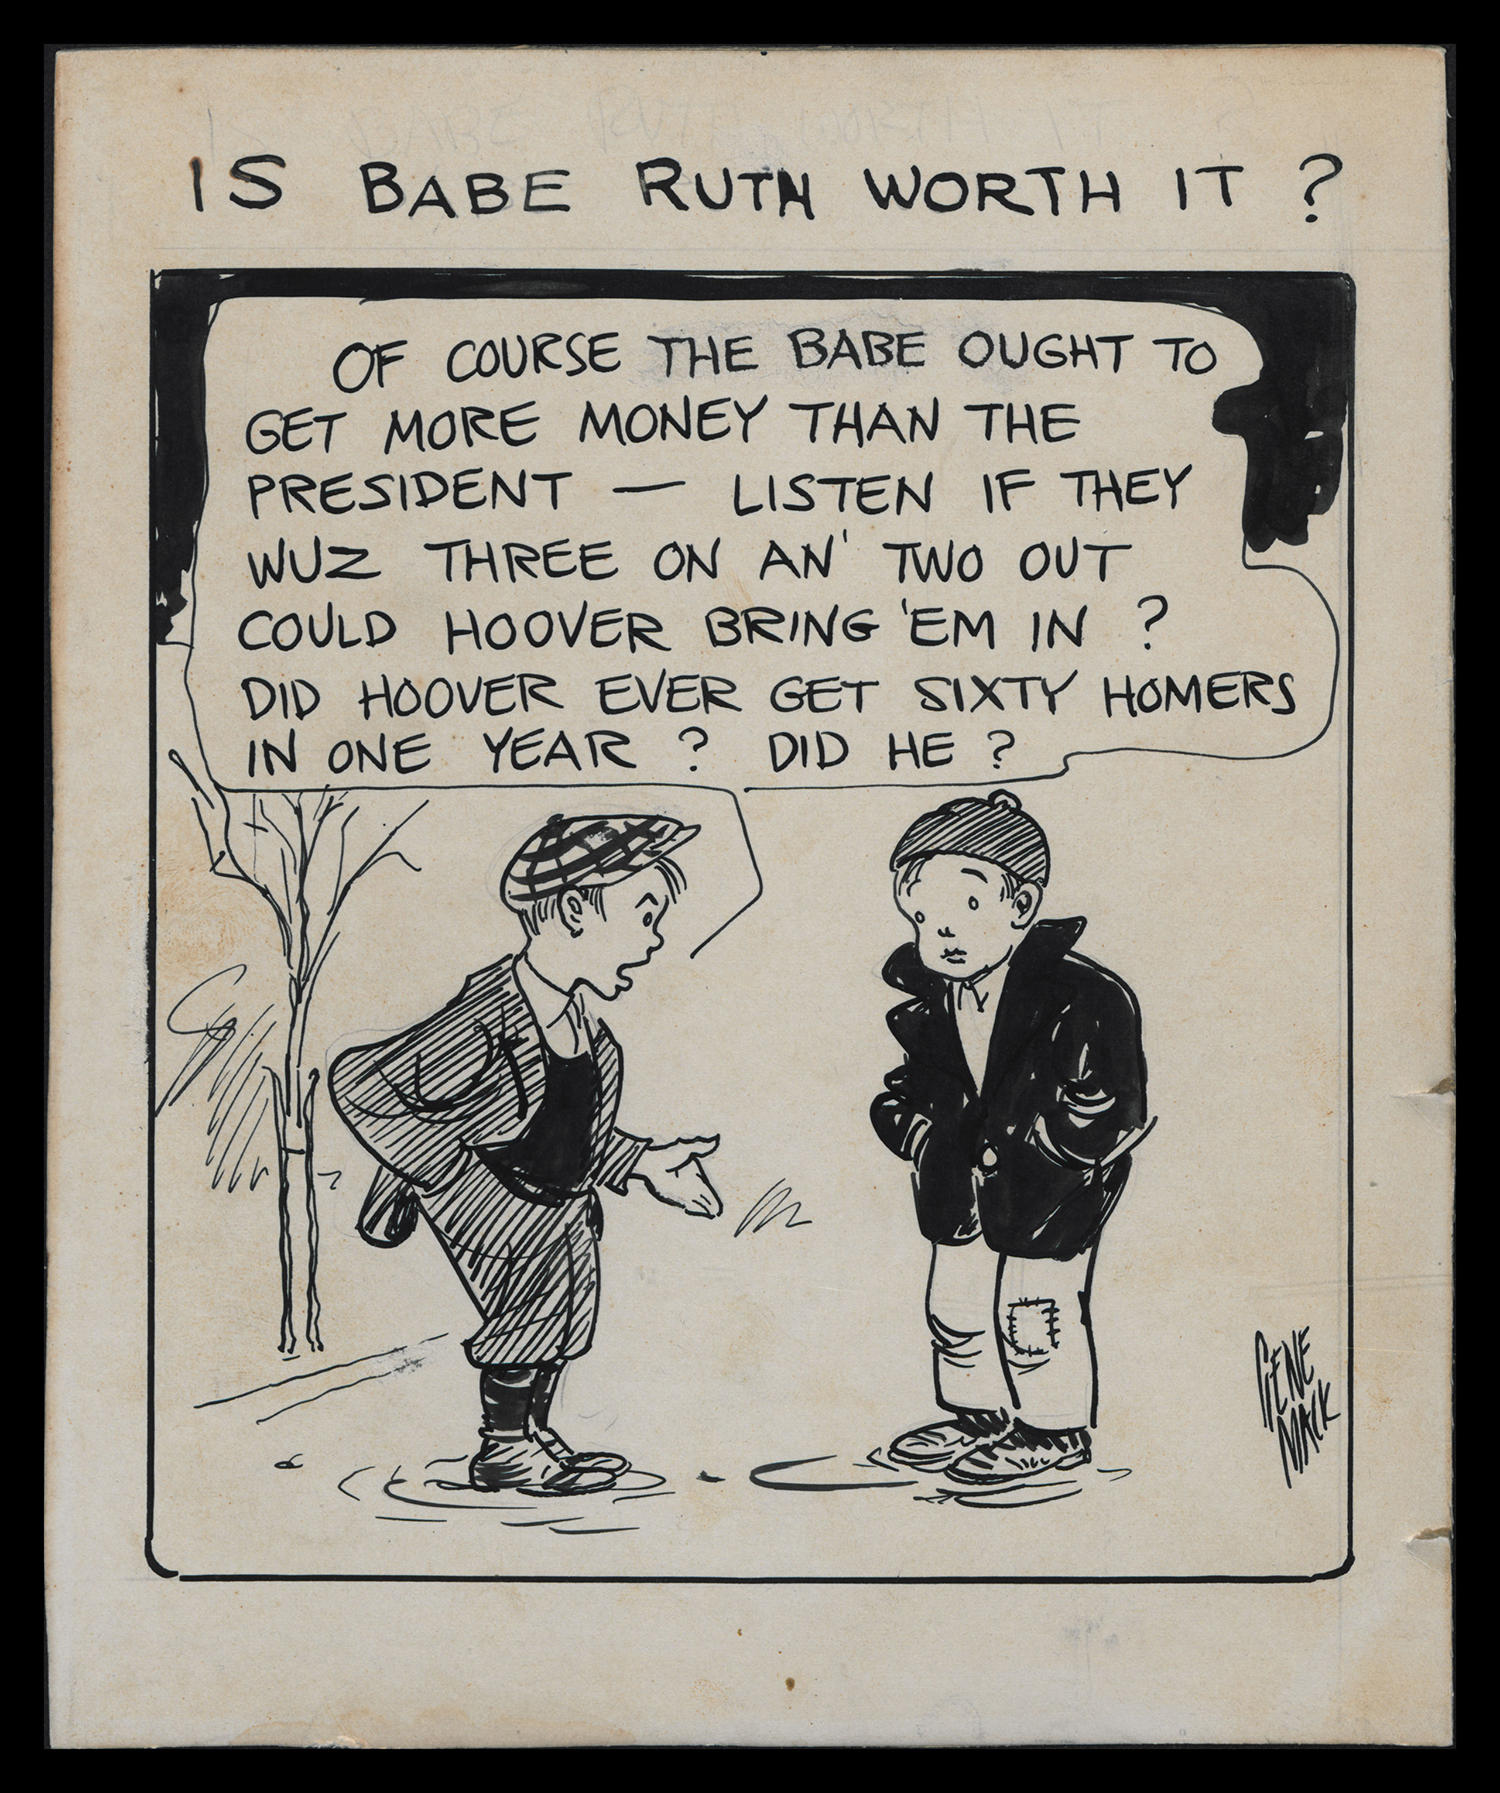 """Gene Mack's cartoon <a href=""""http://collection.baseballhall.org/islandora/object/islandora%3A273610"""">Is Babe Ruth Worth It?</a> commented on Ruth's 1930 salary of a hefty $80,000, which was seen by many as extravagant, especially during the Great Depression. (National Baseball Hall of Fame)"""